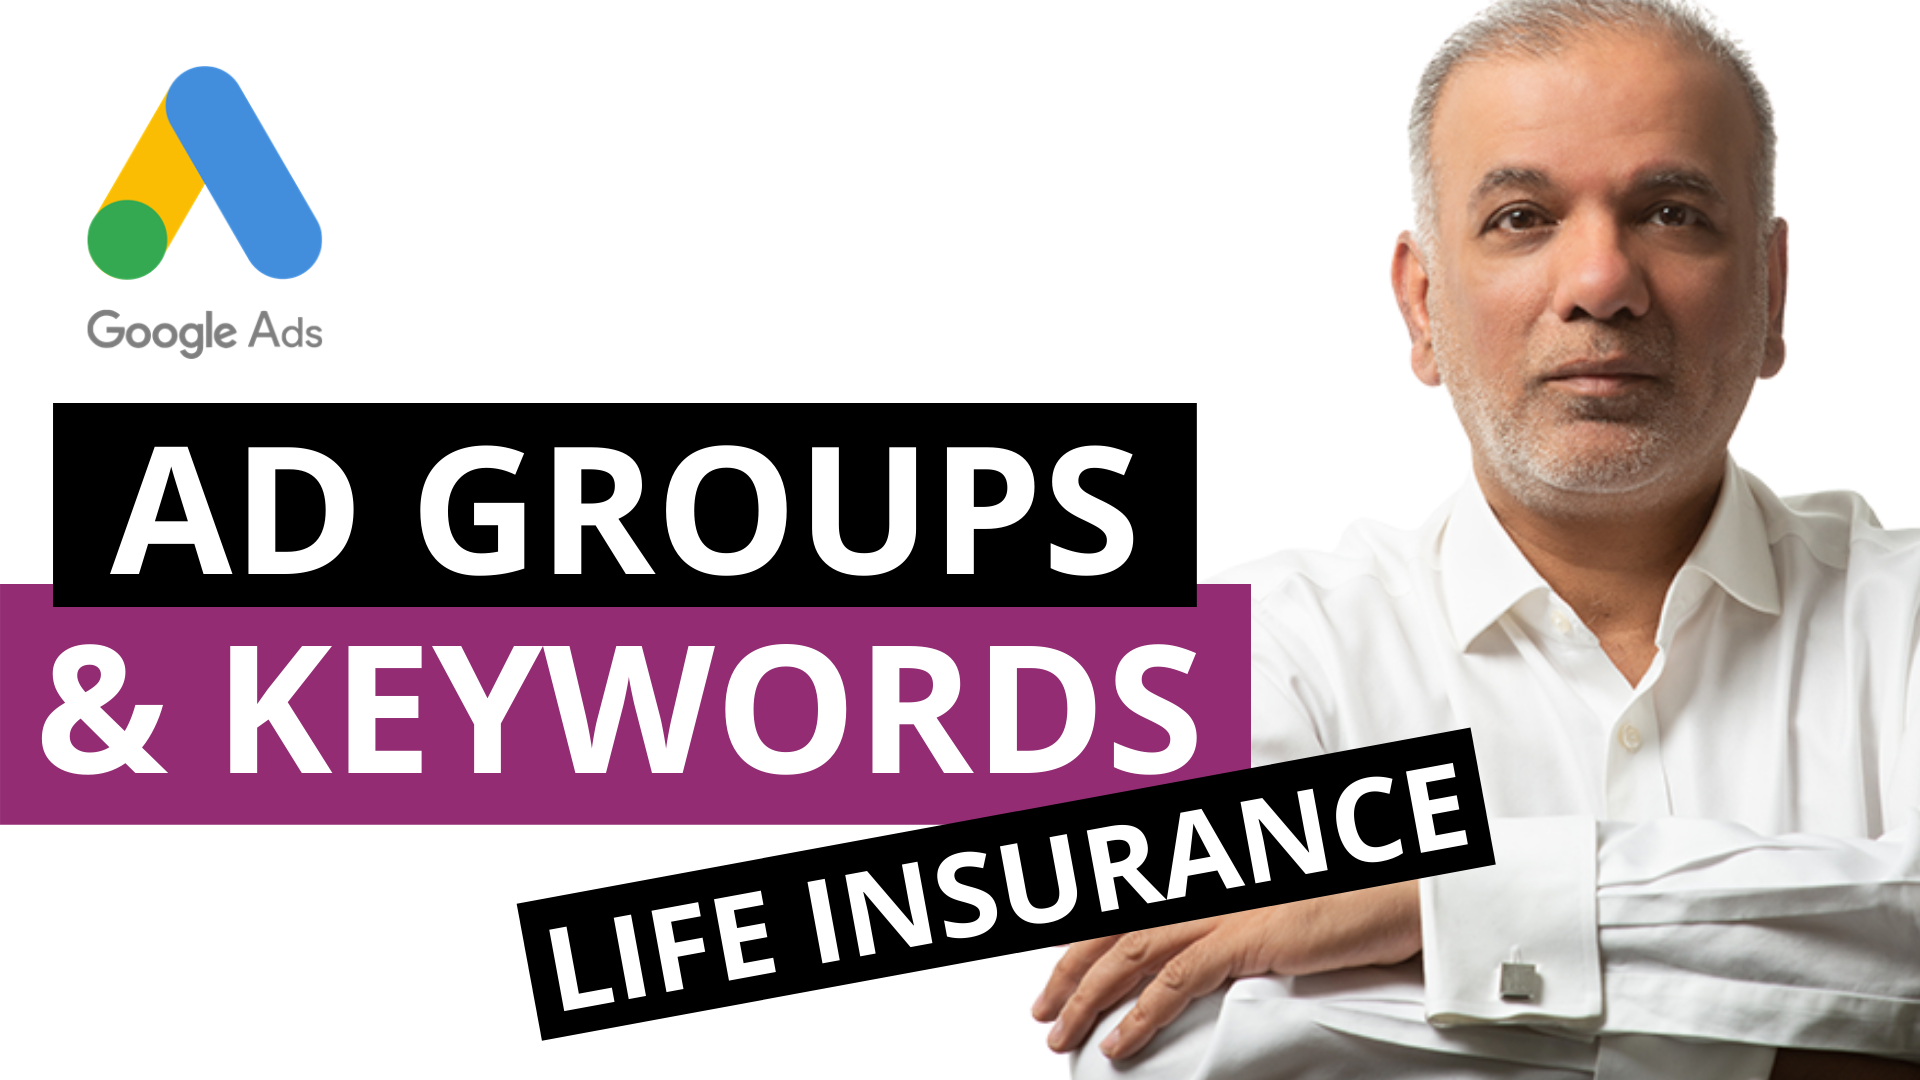 How To Do Keyword Research With Keyword Planner For Google Ad Groups (Life Insurance)